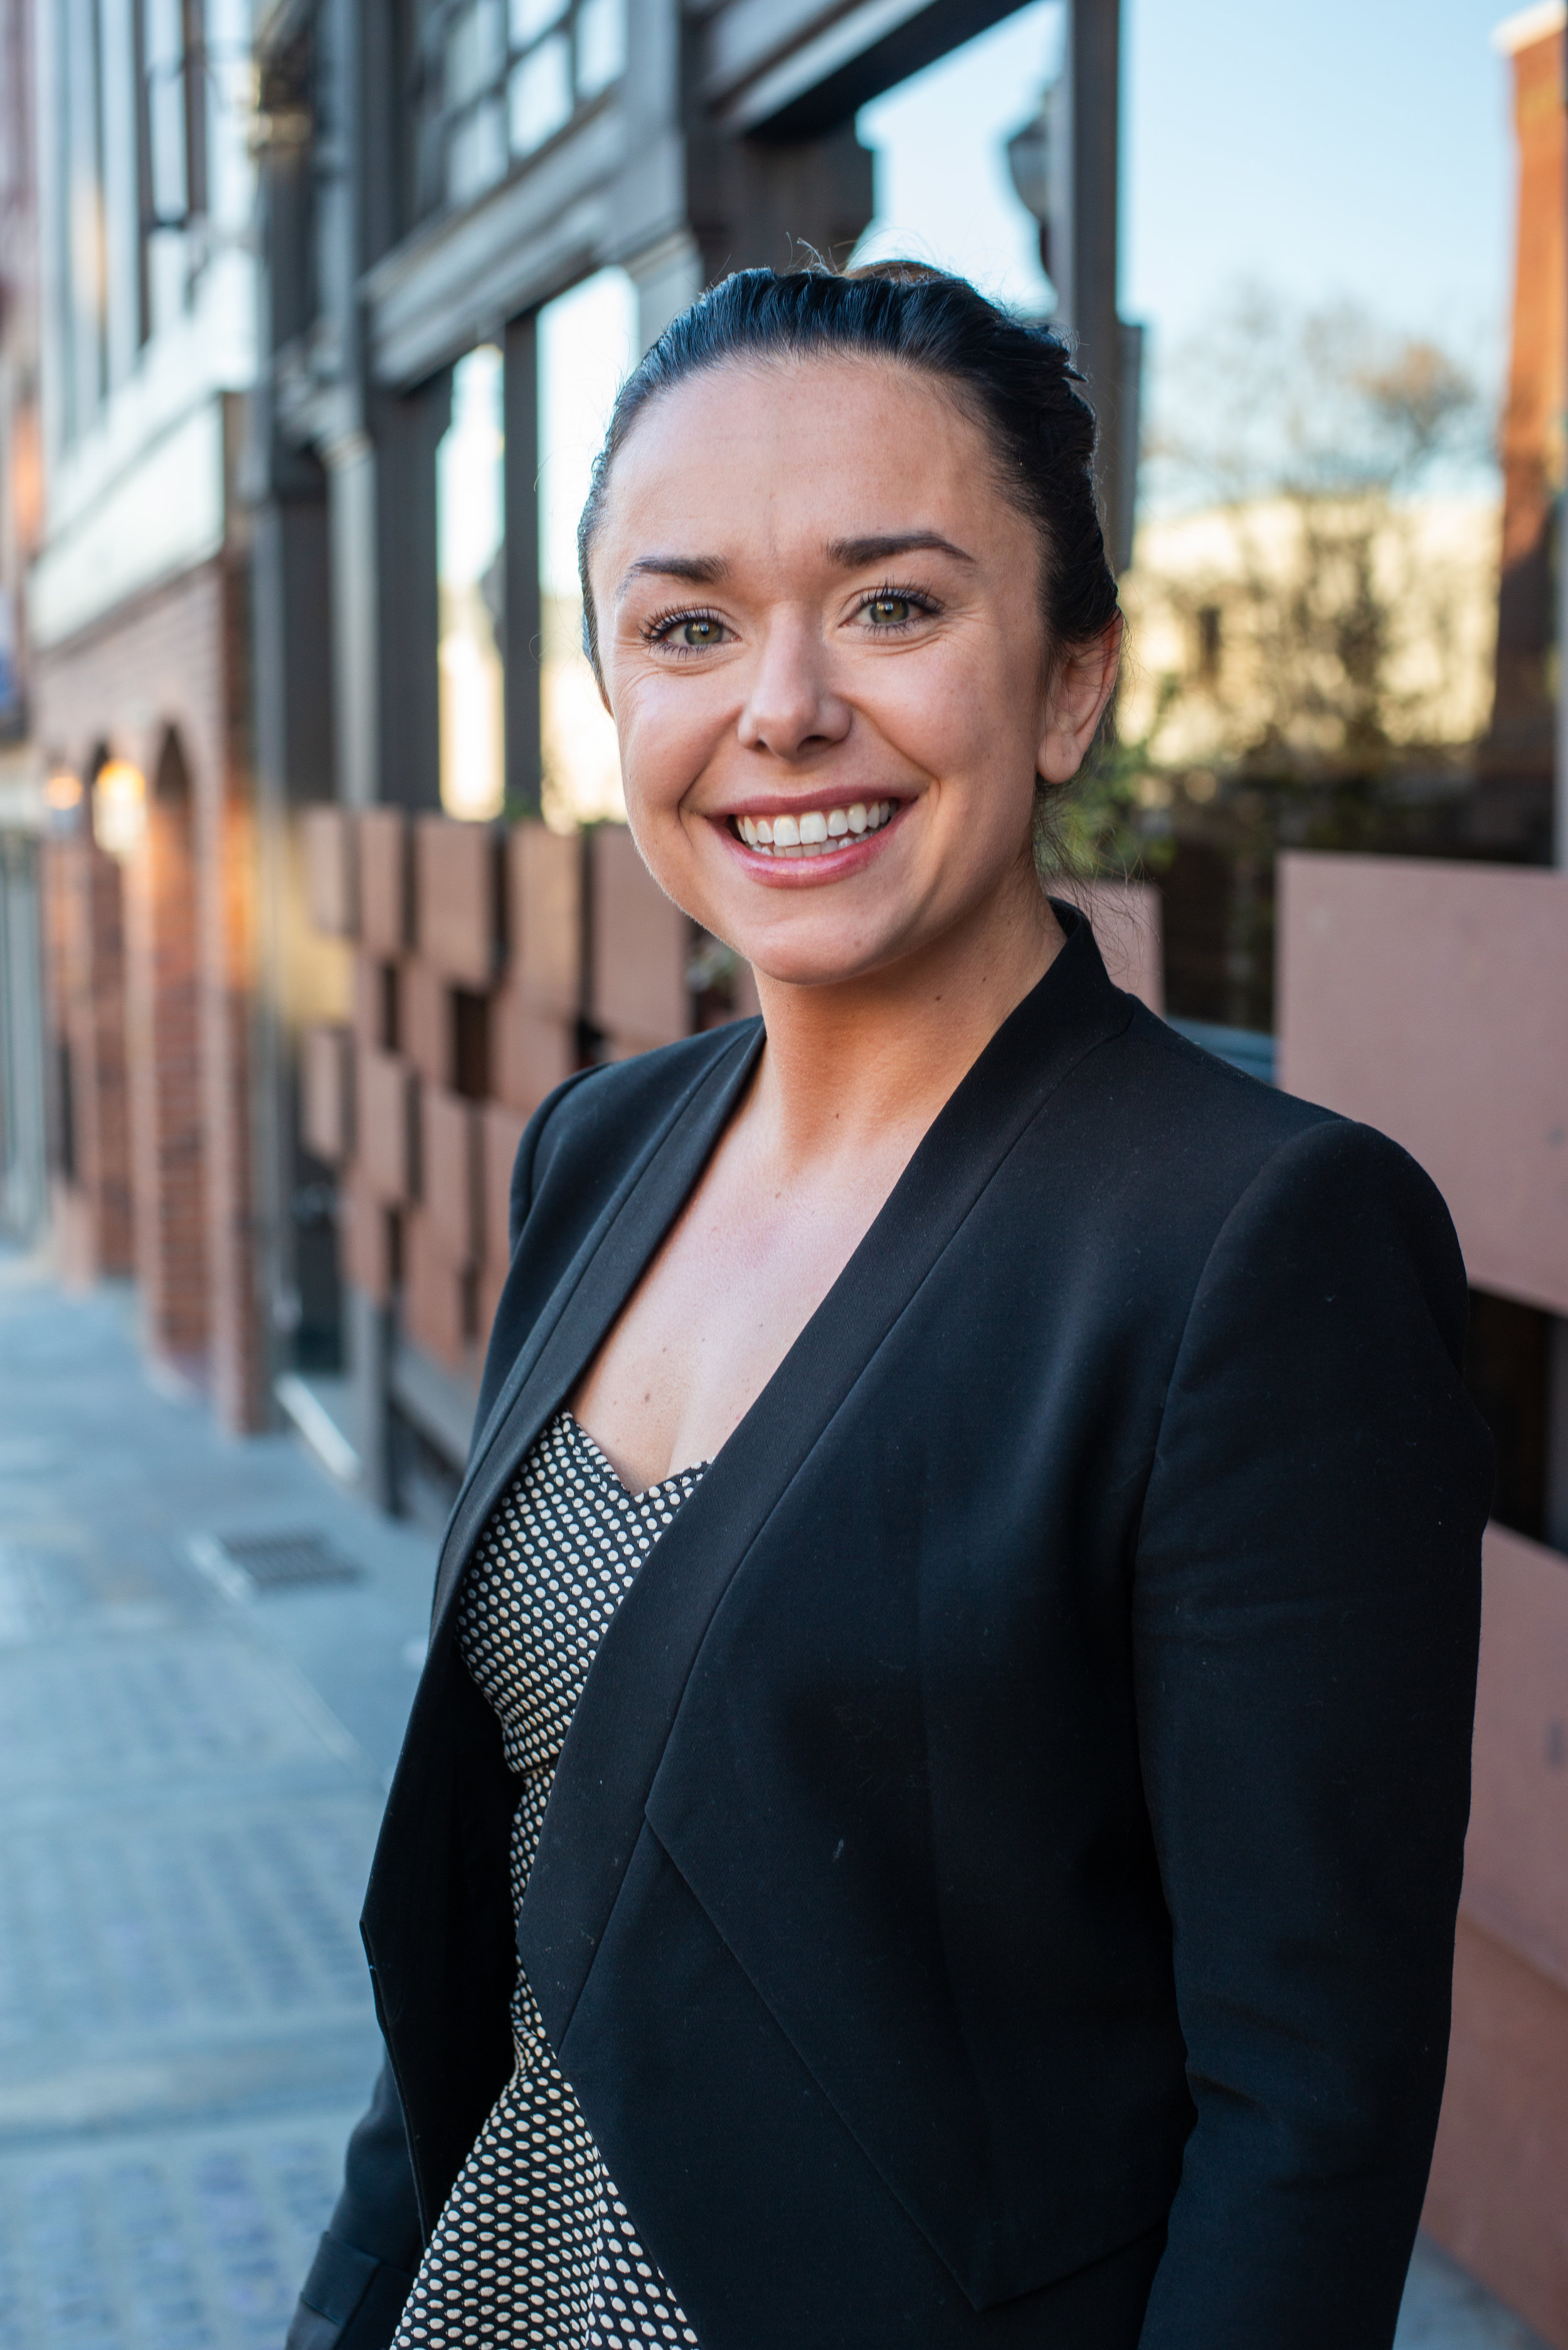 Danielle Megears - General Manager